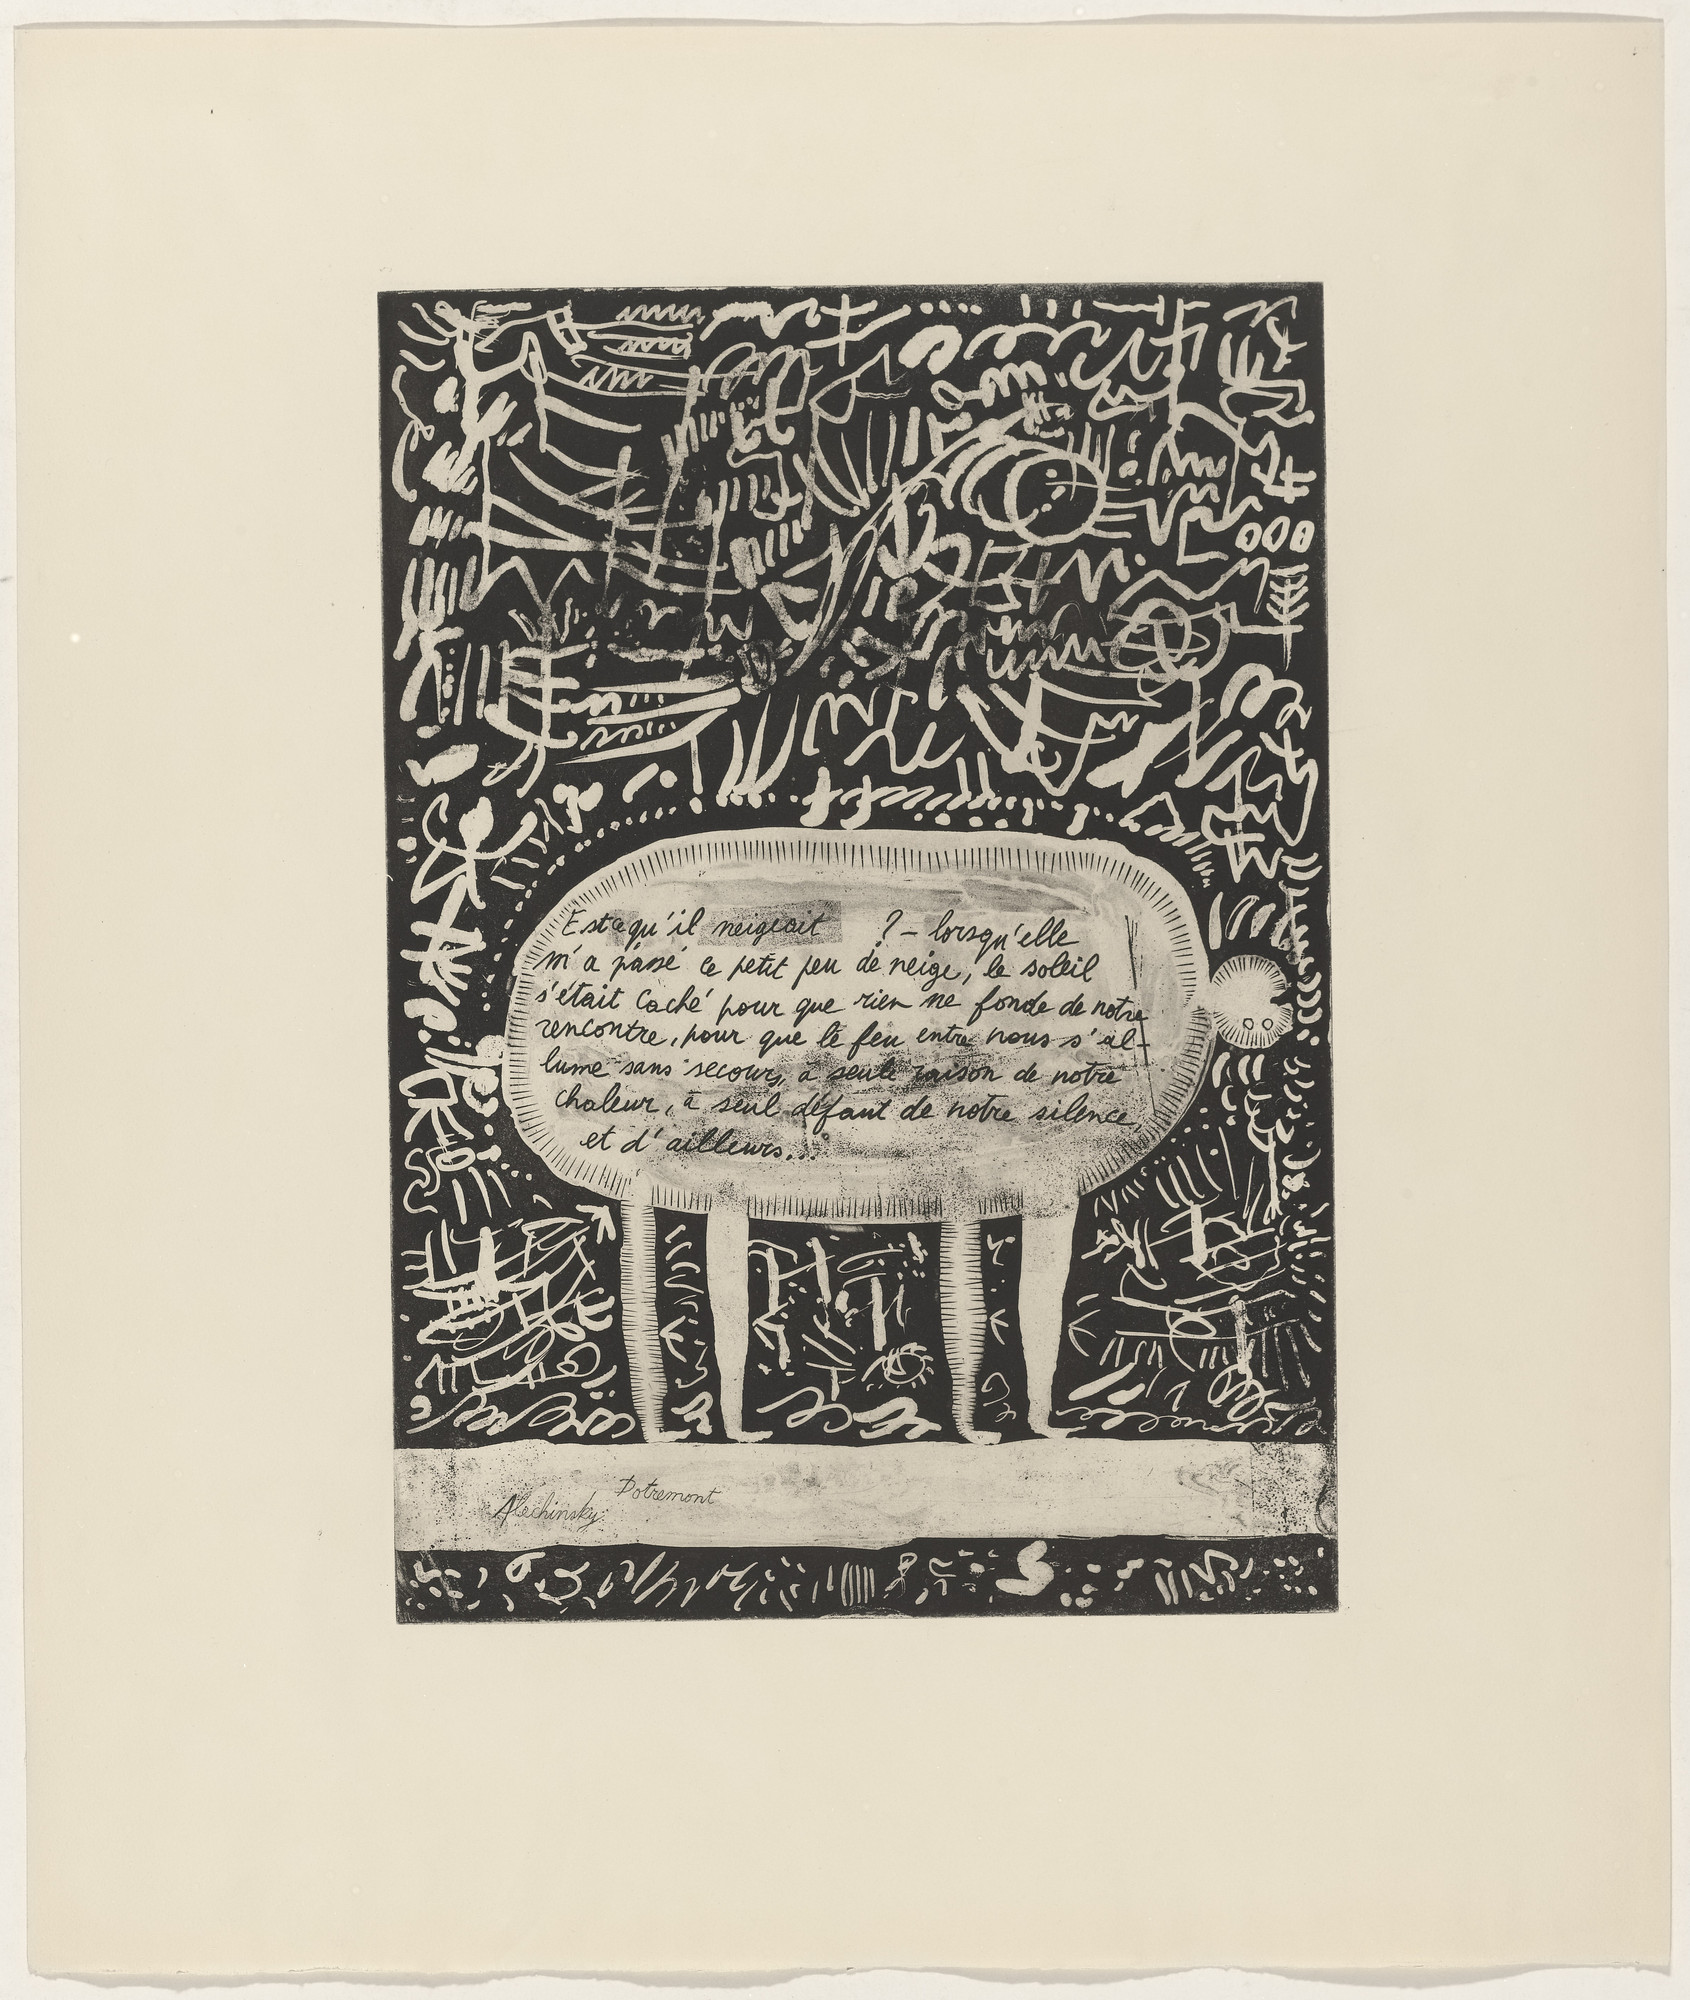 Pierre Alechinsky, Christian Dotremont. In-text plate (folio 4) from 21 Etchings and Poems. 1952, published 1960